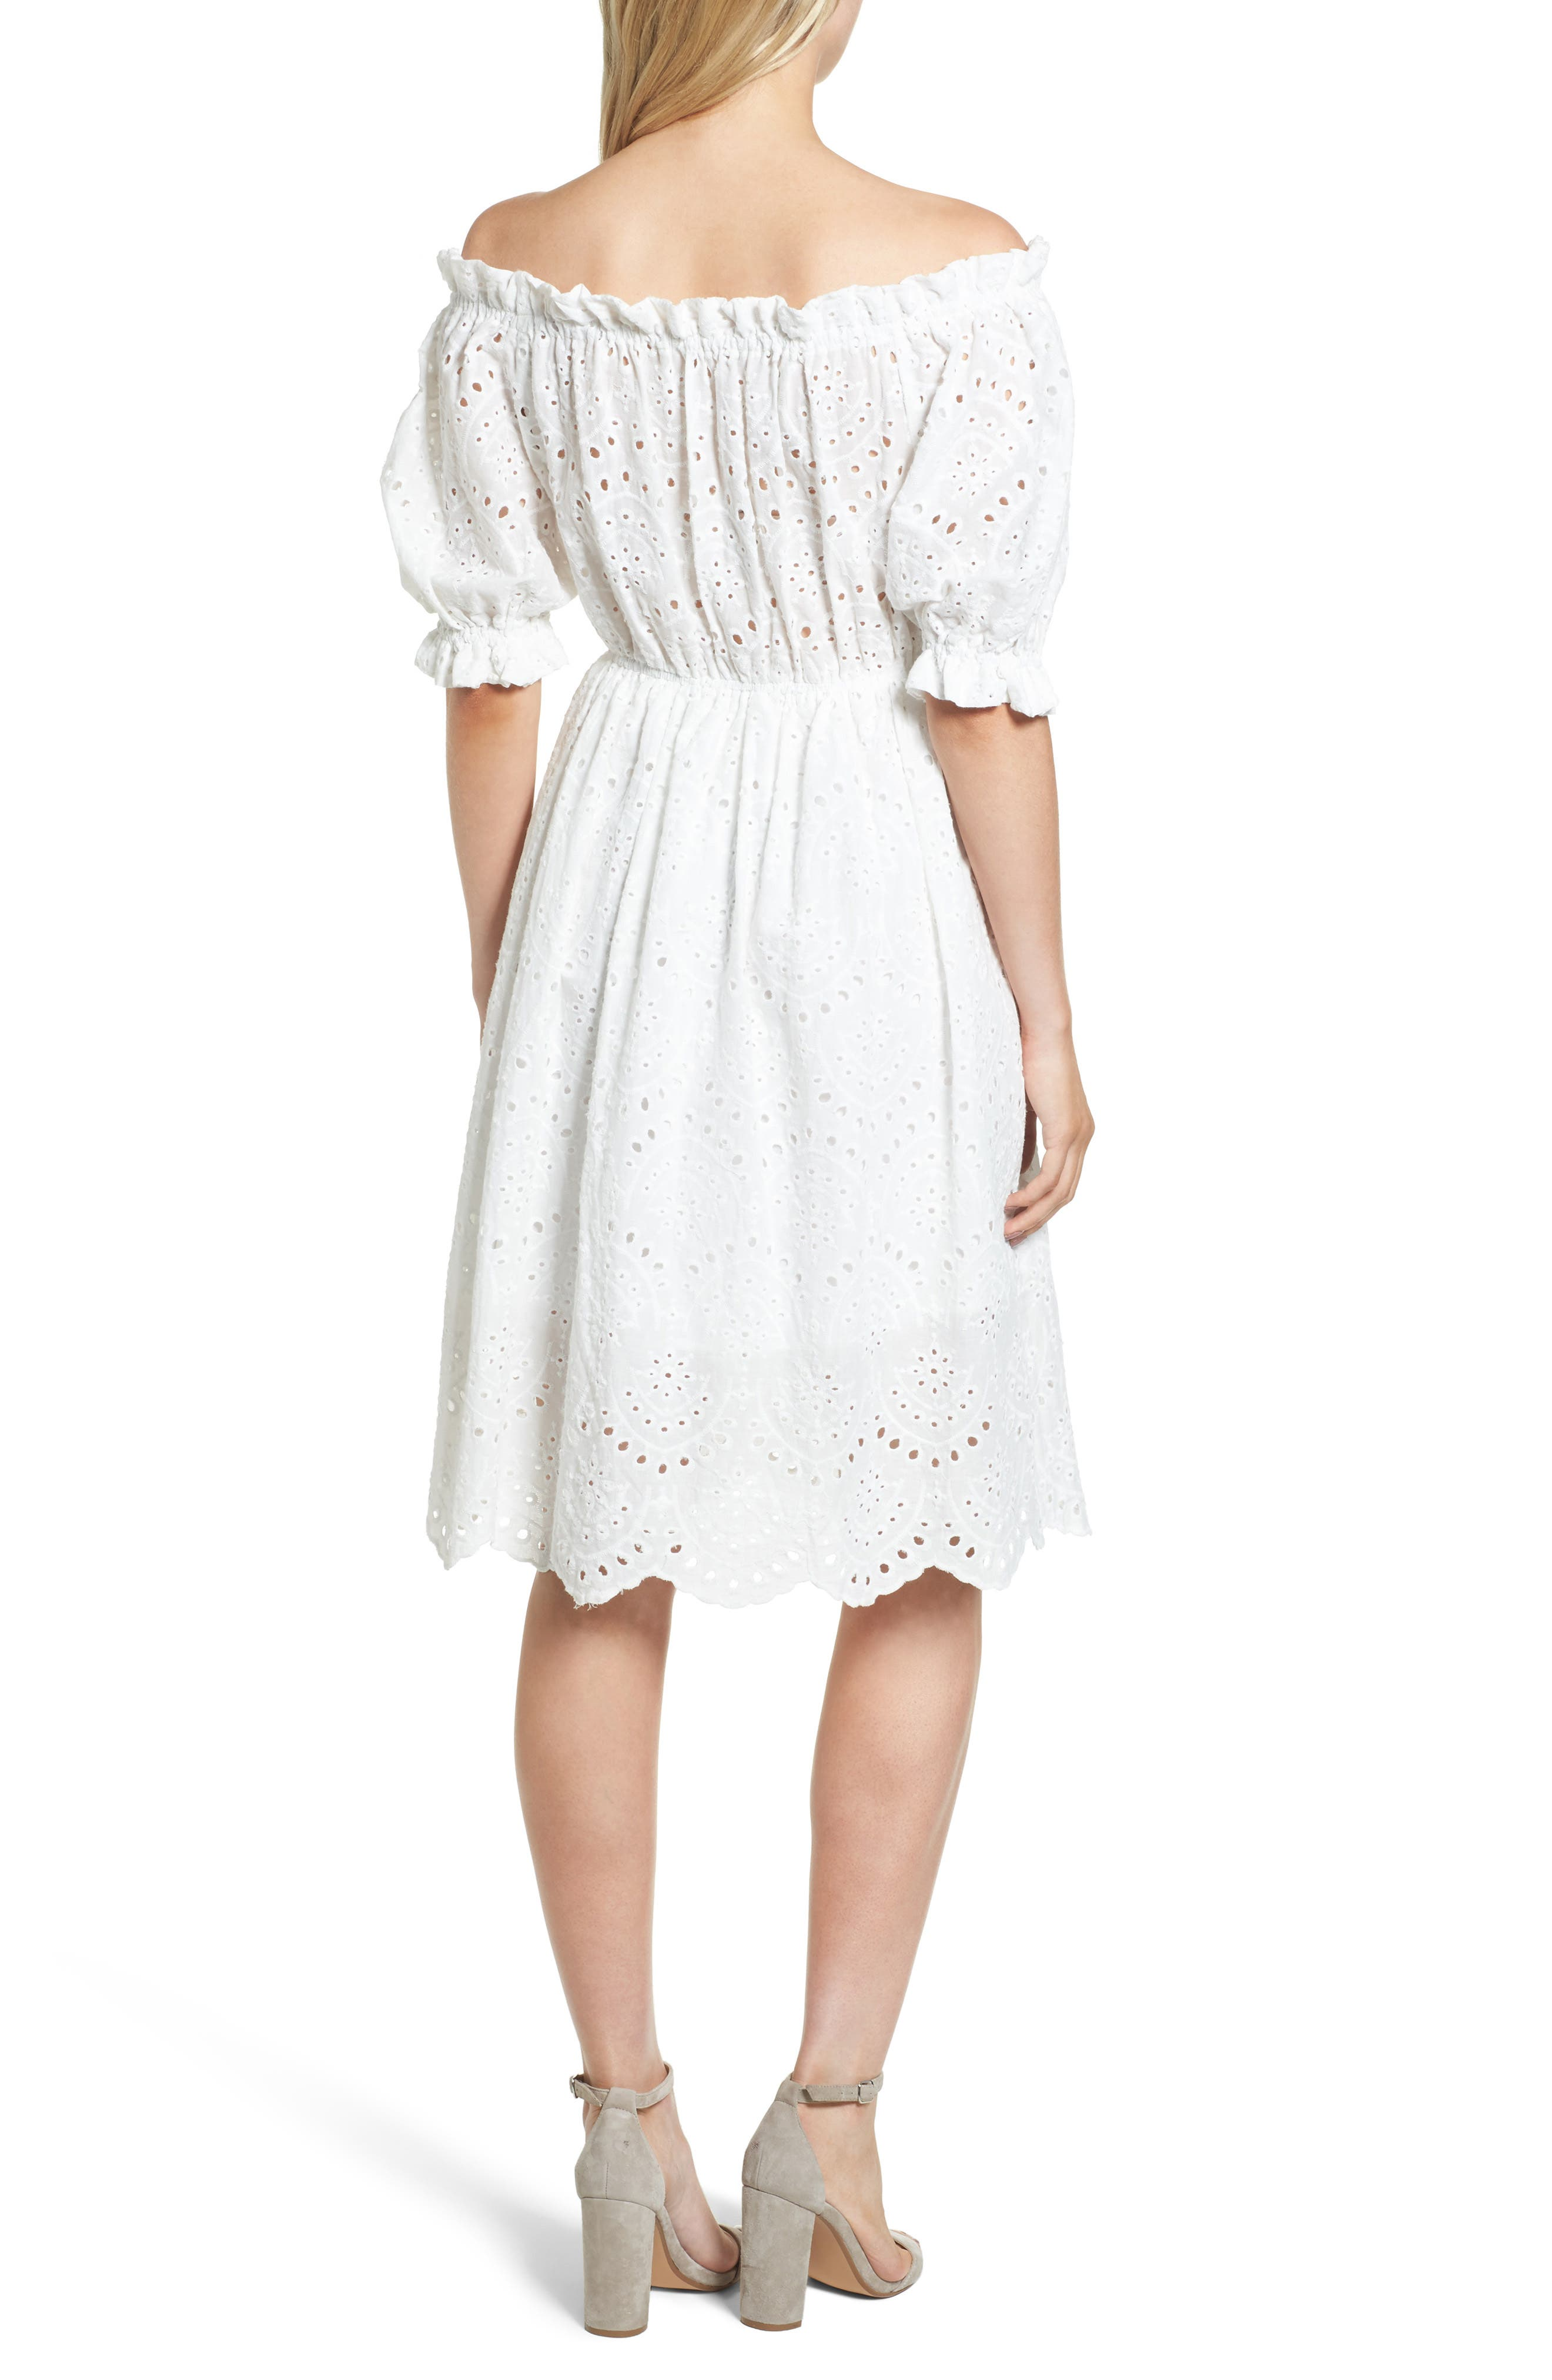 The White Party Off the Shoulder Dress,                             Alternate thumbnail 2, color,                             100